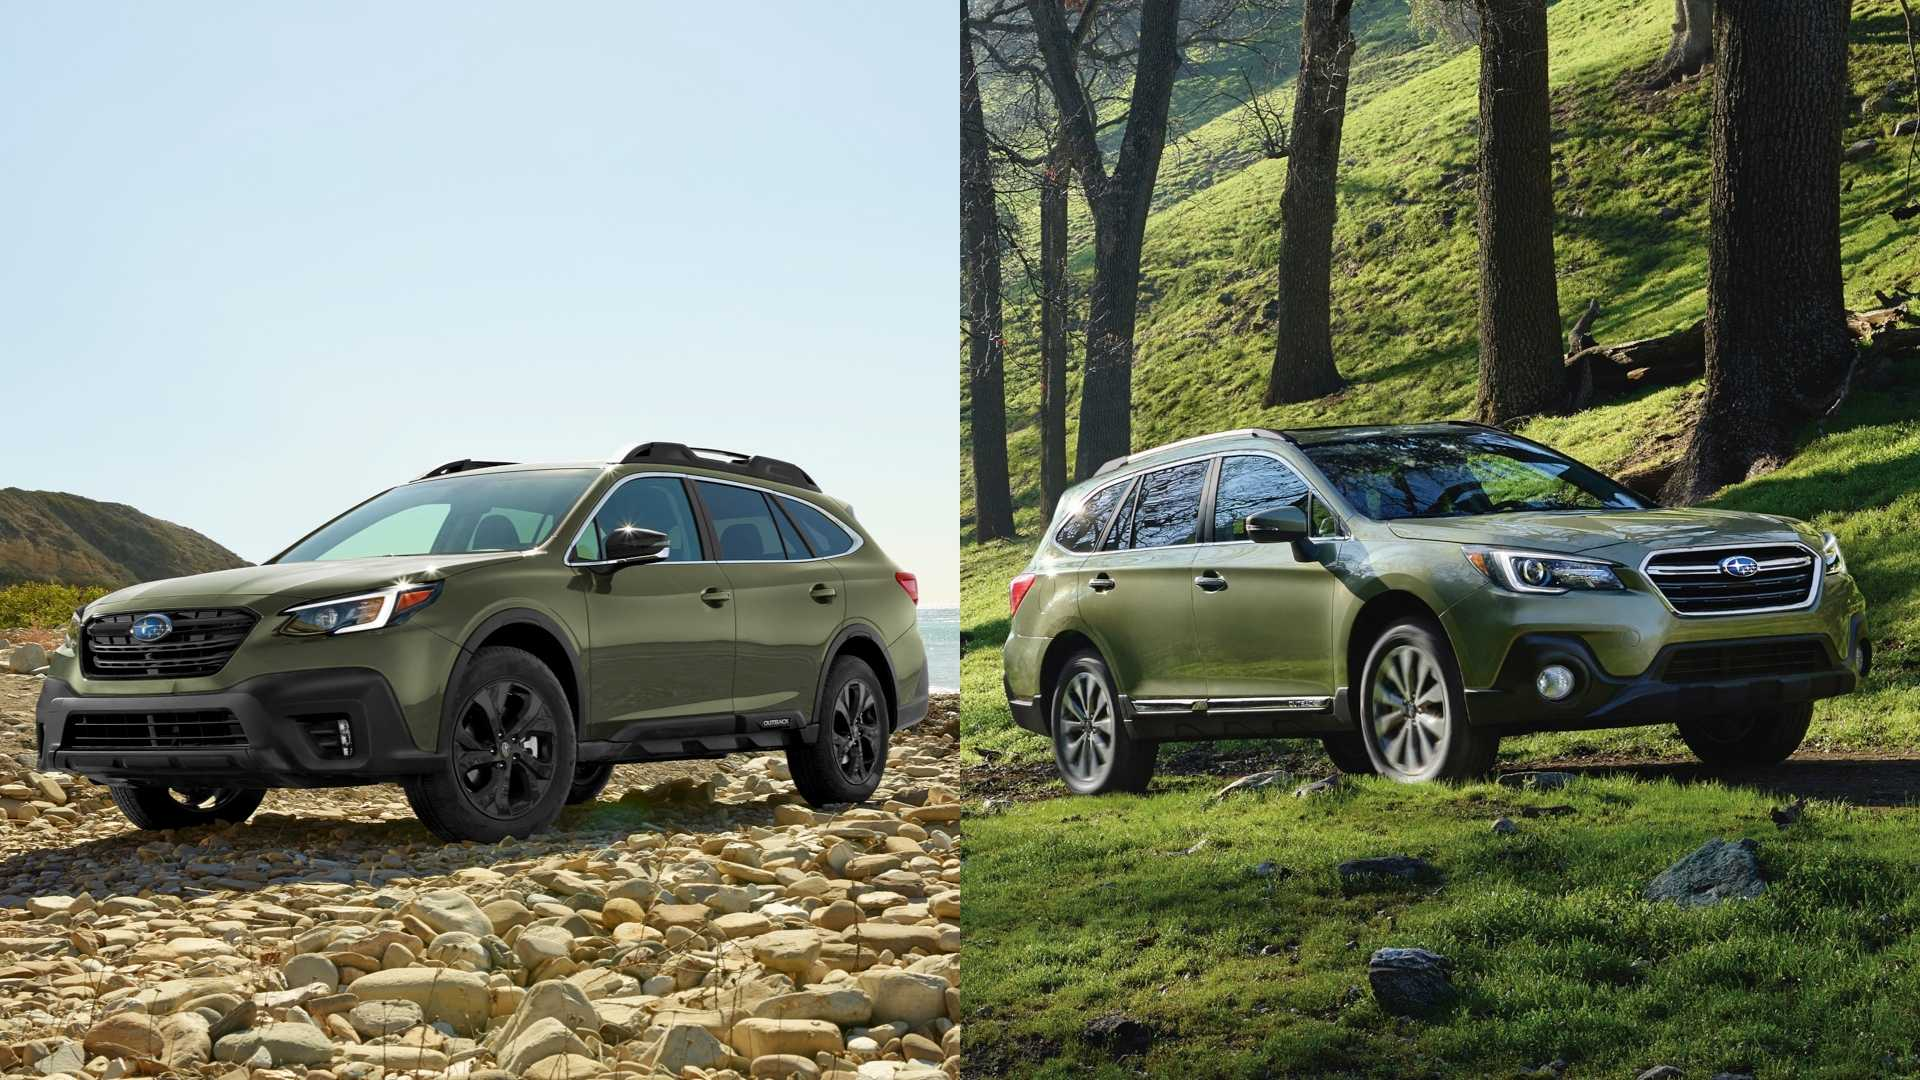 62 New Subaru Outback Update 2020 Engine